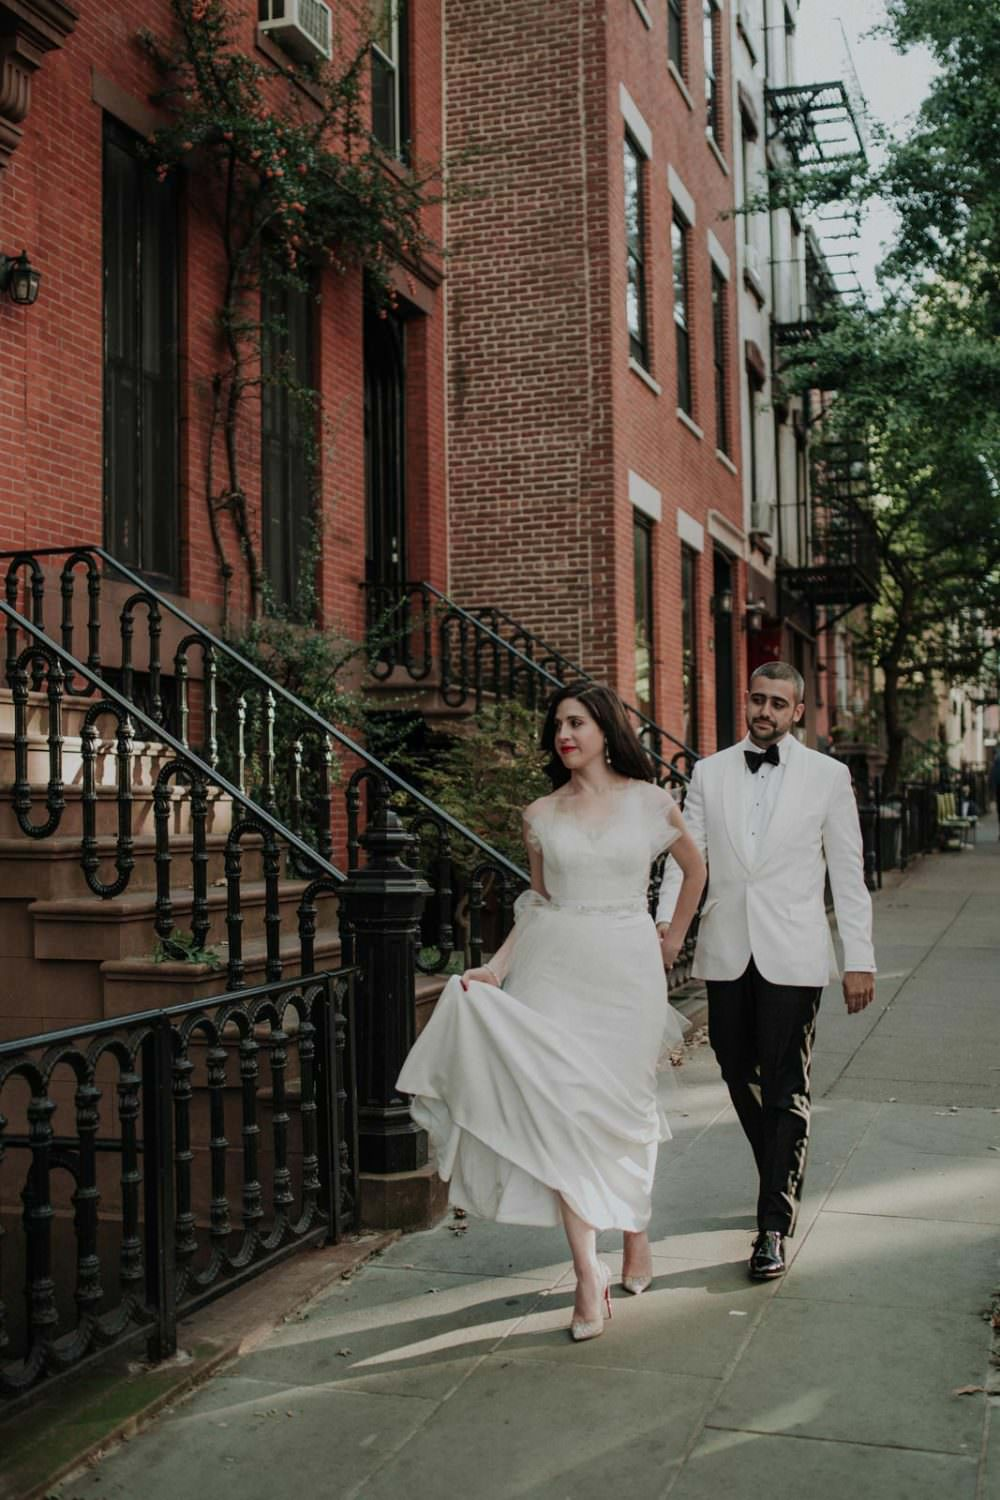 Bride and Groom hold hands while walking on a brooklyn street with brick brownstones behind them